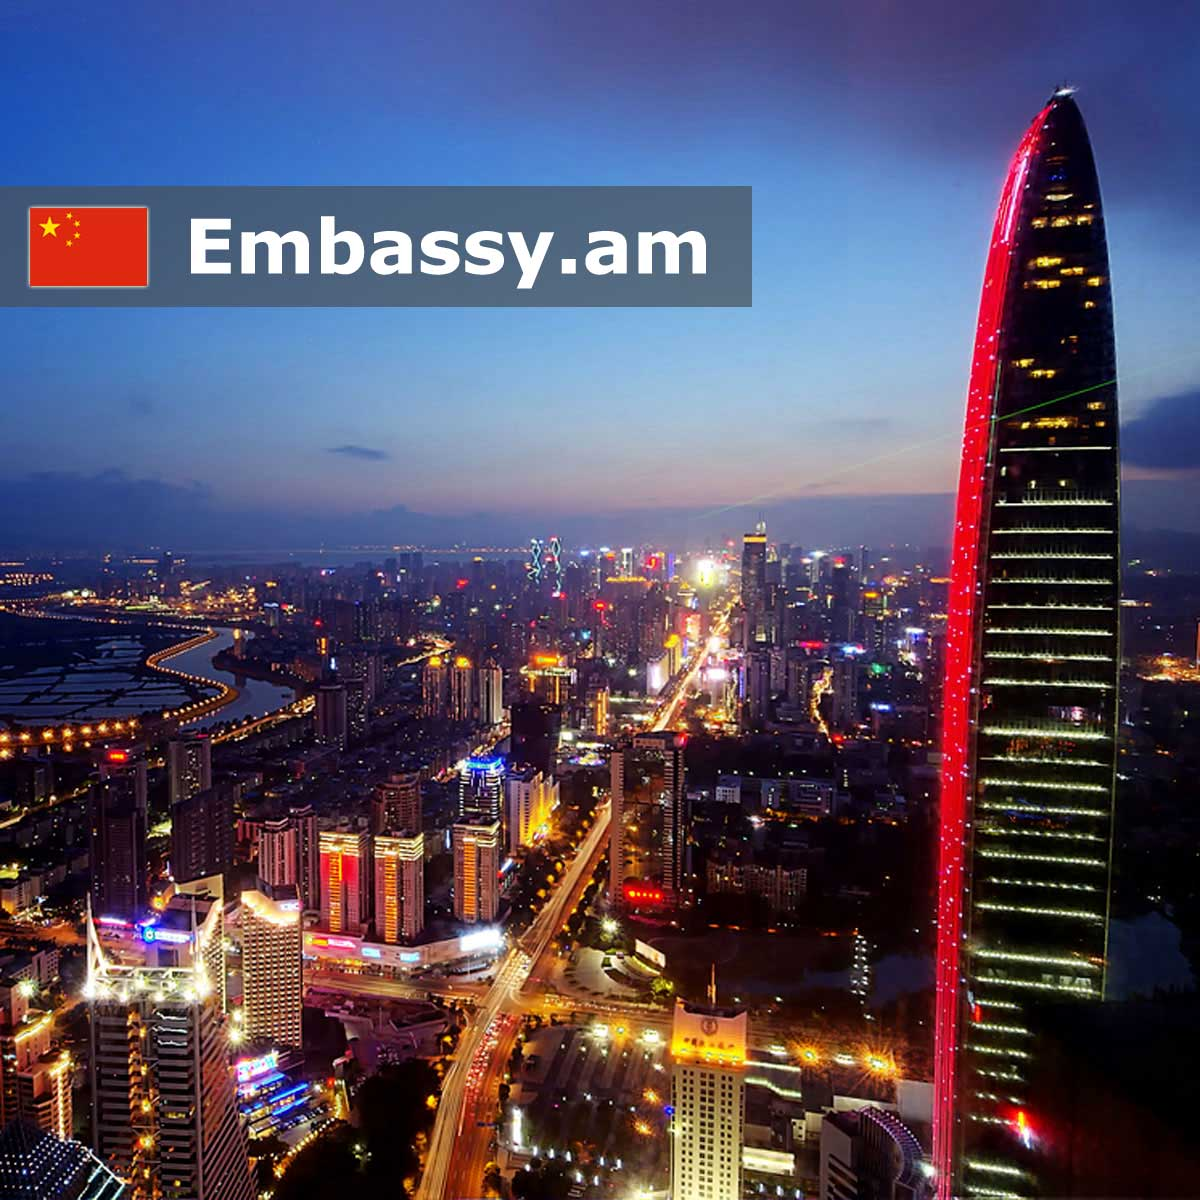 Shenzhen - Hotels in China - Embassy.am